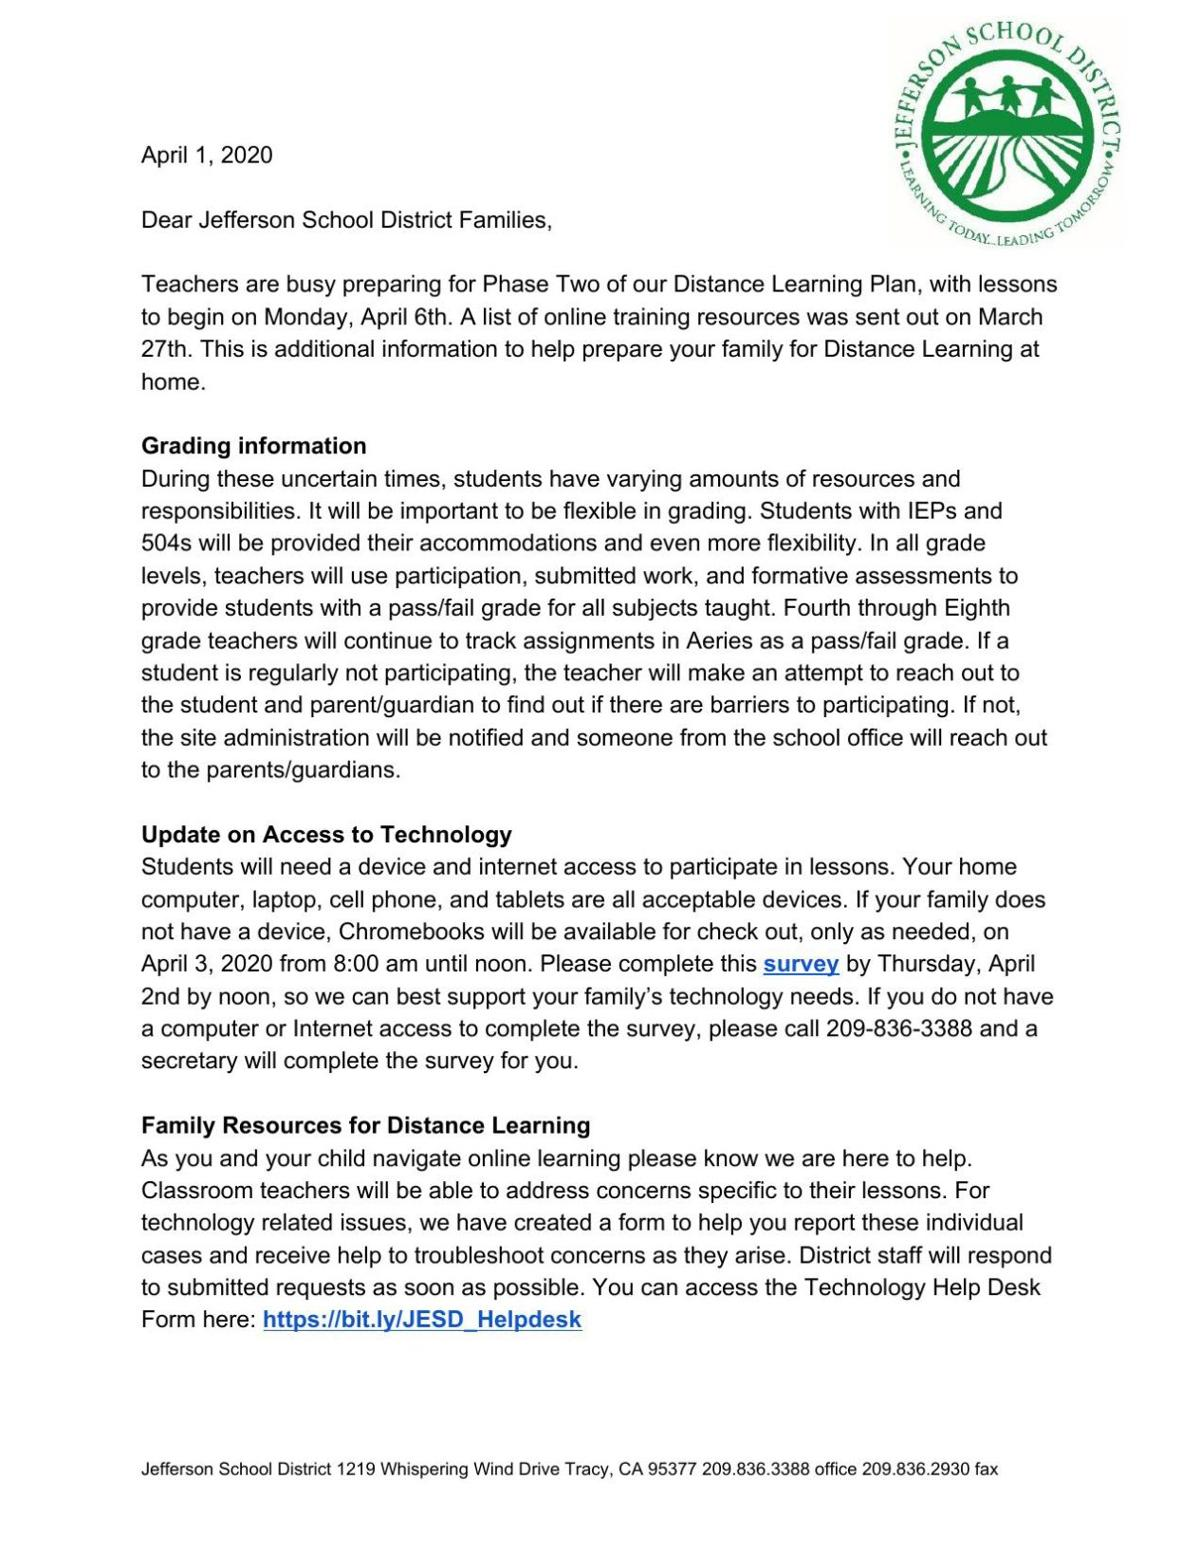 JSD distance learning resources